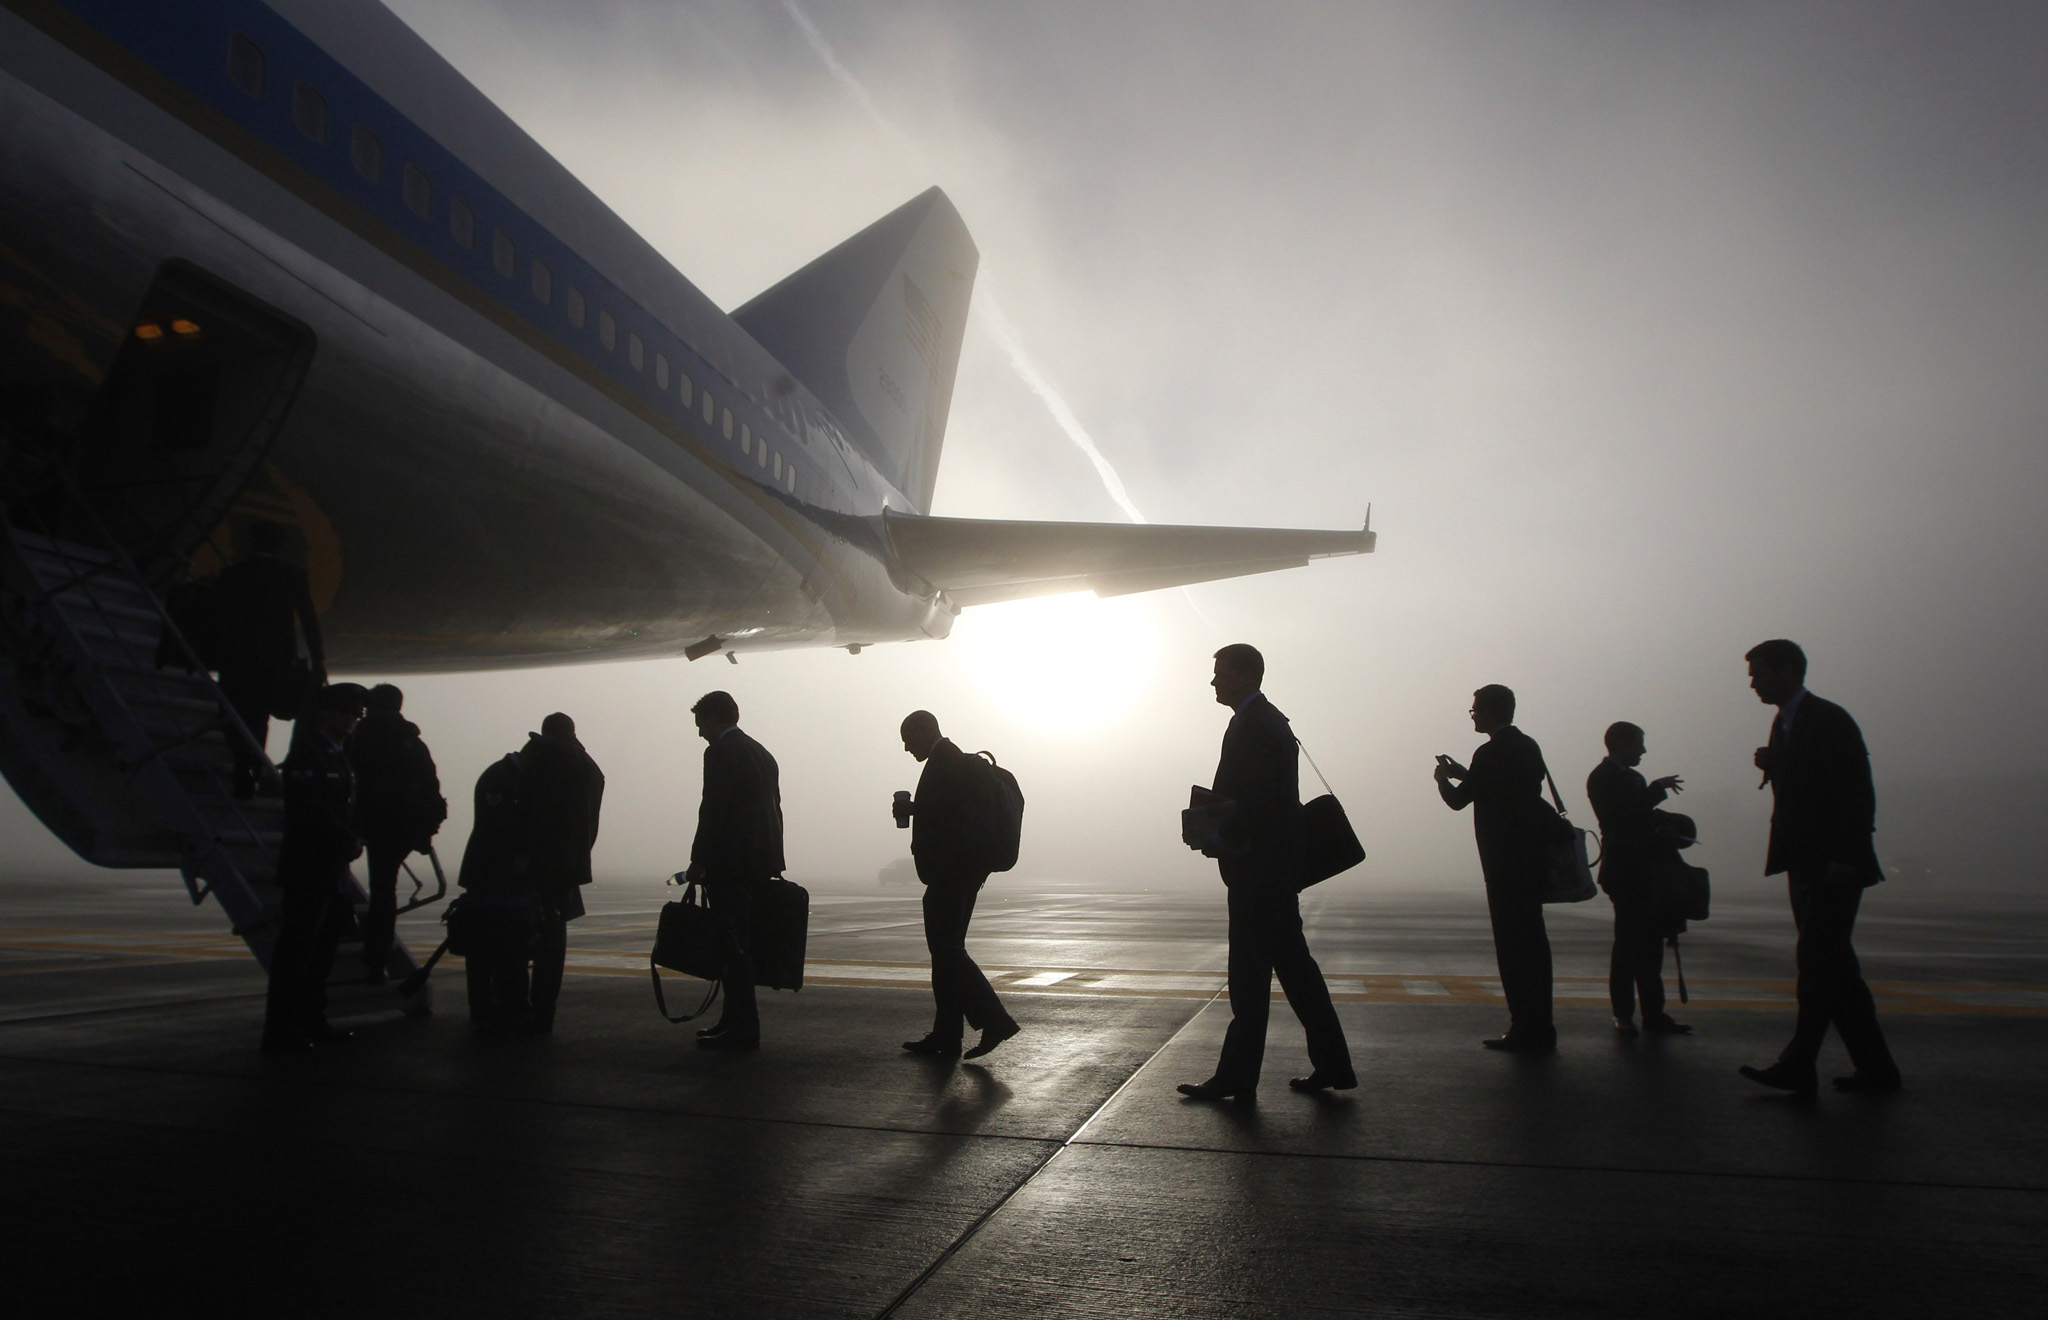 Travelling White House staff and press board the rear steps of Air Force One on a foggy morning in Seattle...Travelling White House staff and press board the rear steps of Air Force One on a foggy morning in Seattle, November 25, 2013. U.S. President Barack Obama is attending fundraisers and events on the economy and immigration in Los Angeles and San Francisco on Monday.